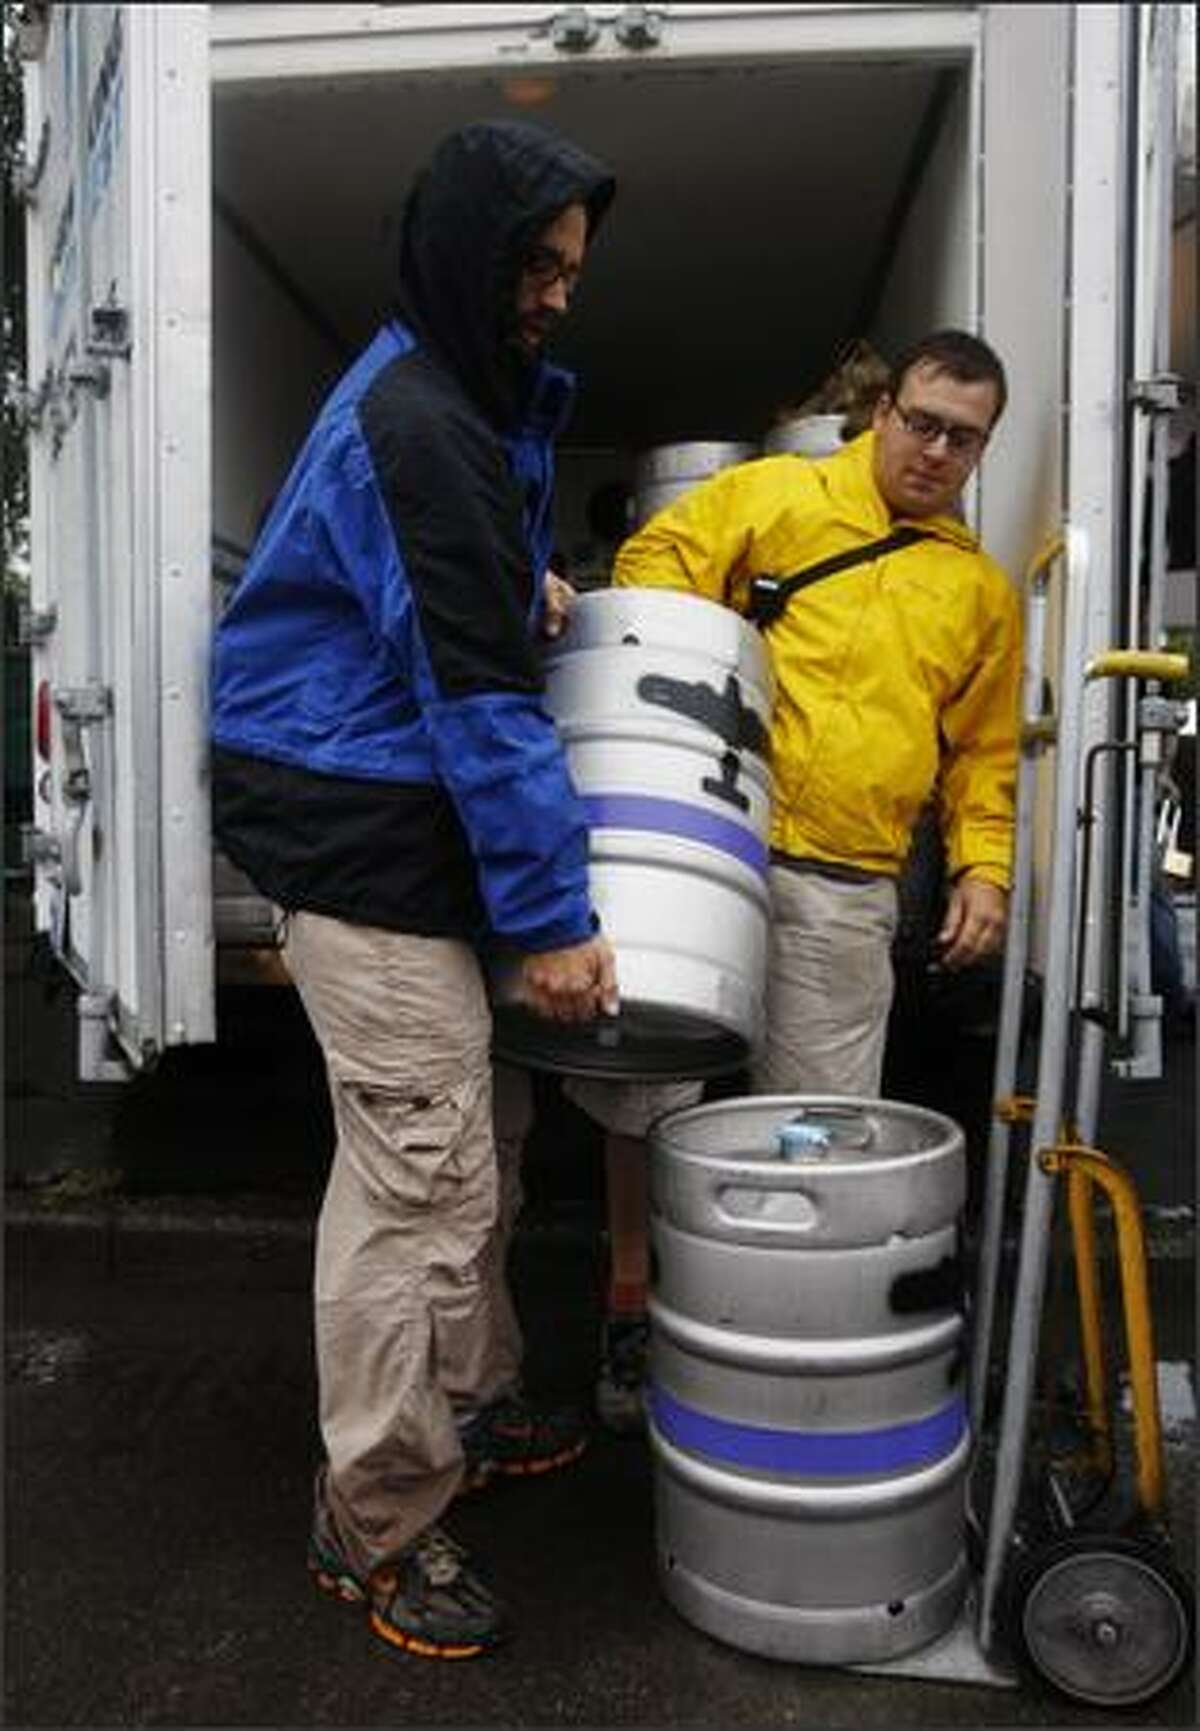 Sean Hunter, left, and Dylan Levalley unload a full keg.